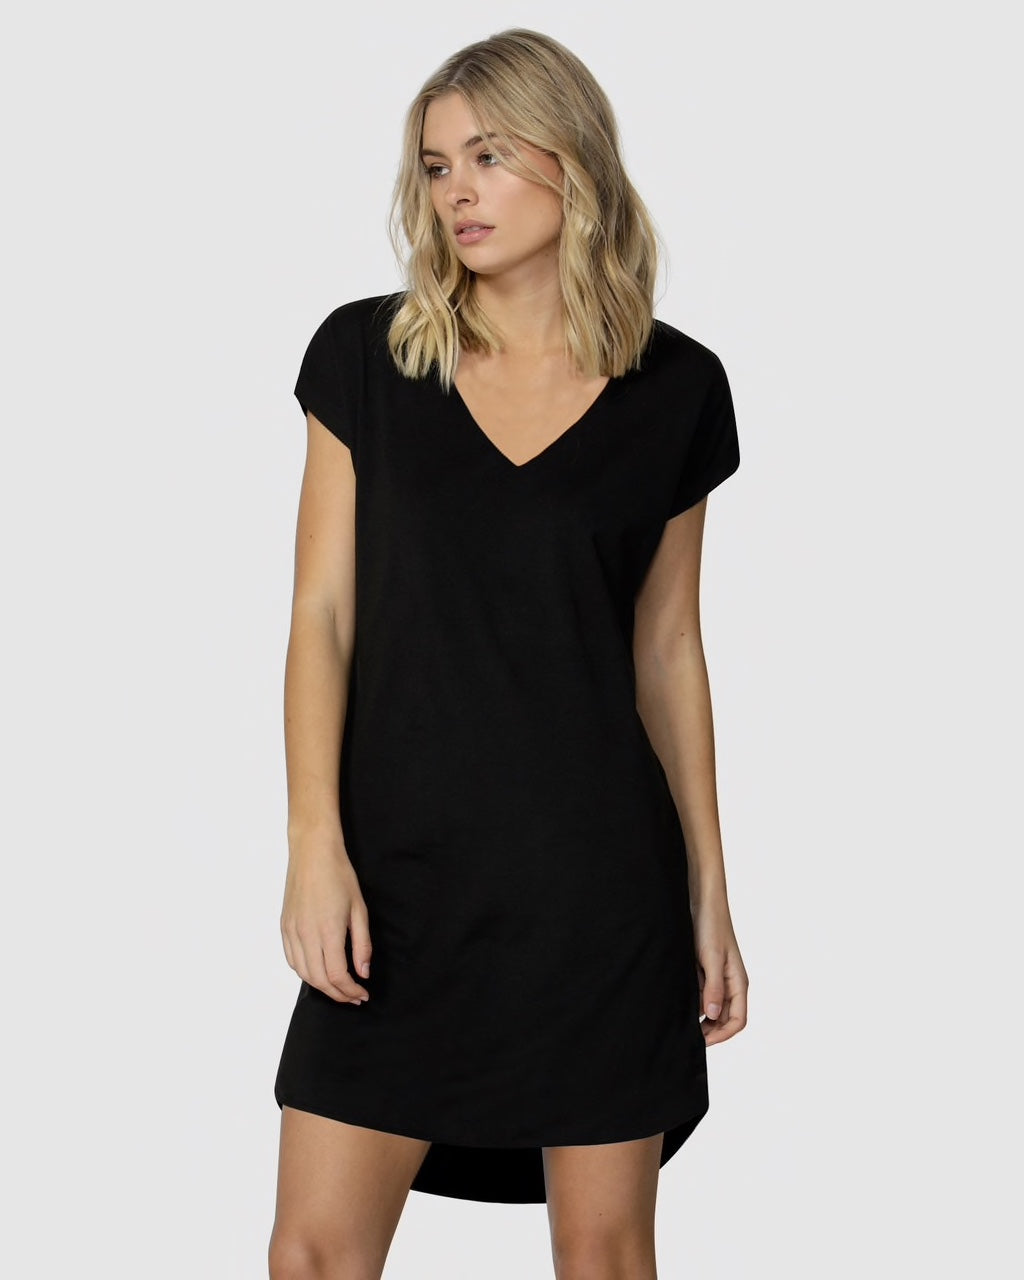 Betty Basic's Ava Dress BLACK